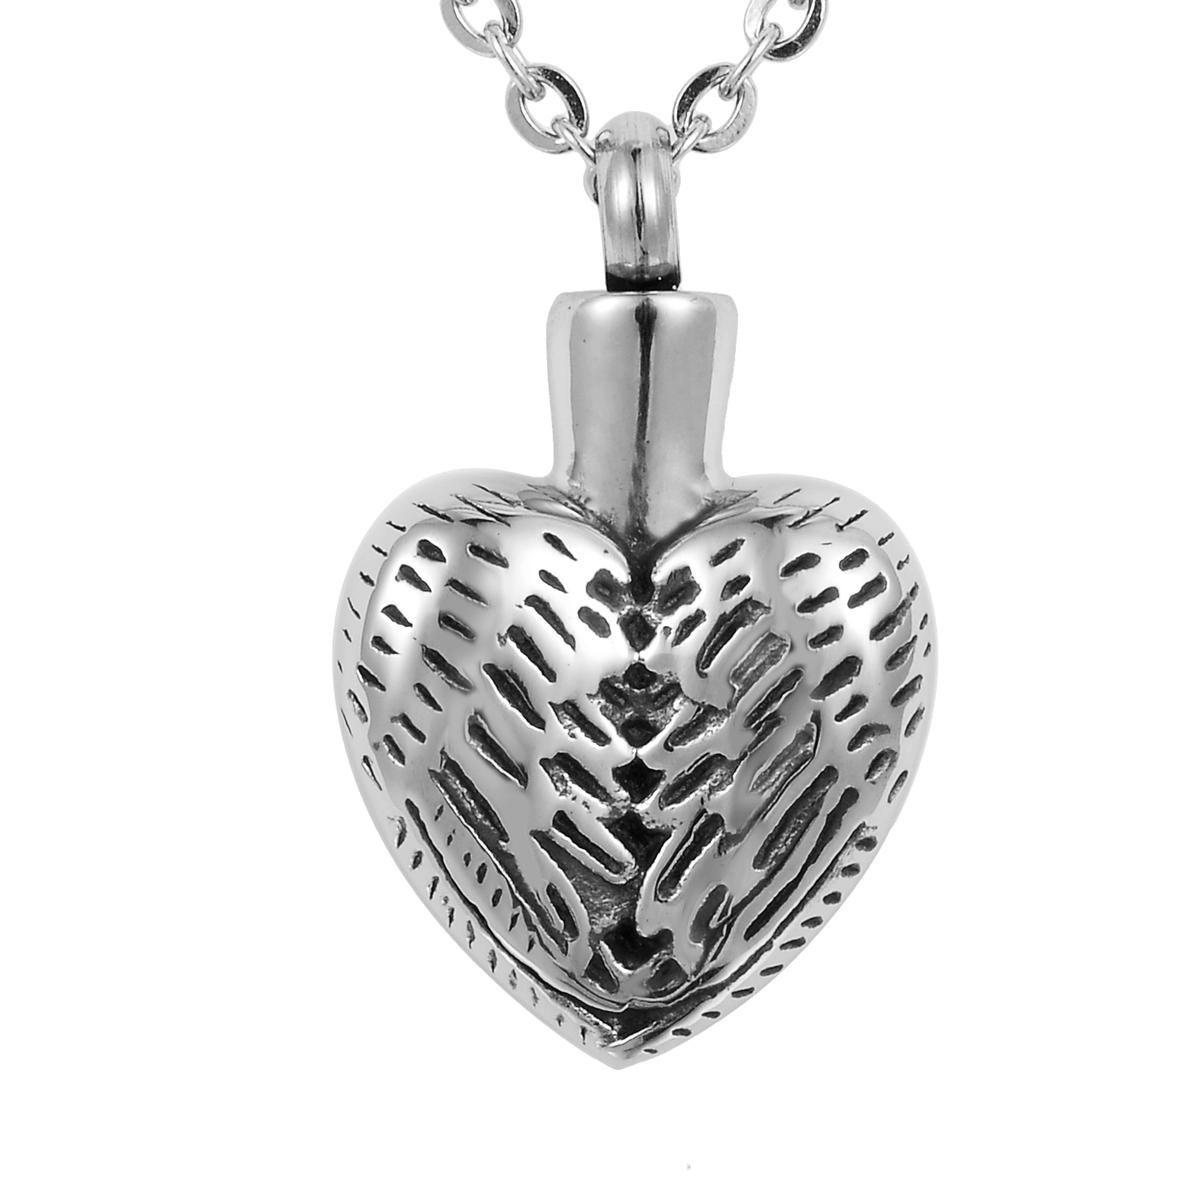 Wholesale lily stainless steel vintage angel wing heart cremation wholesale lily stainless steel vintage angel wing heart cremation jewelry ashes pendant keepsake memorial urn necklace with gift bag and chain pendant mozeypictures Choice Image